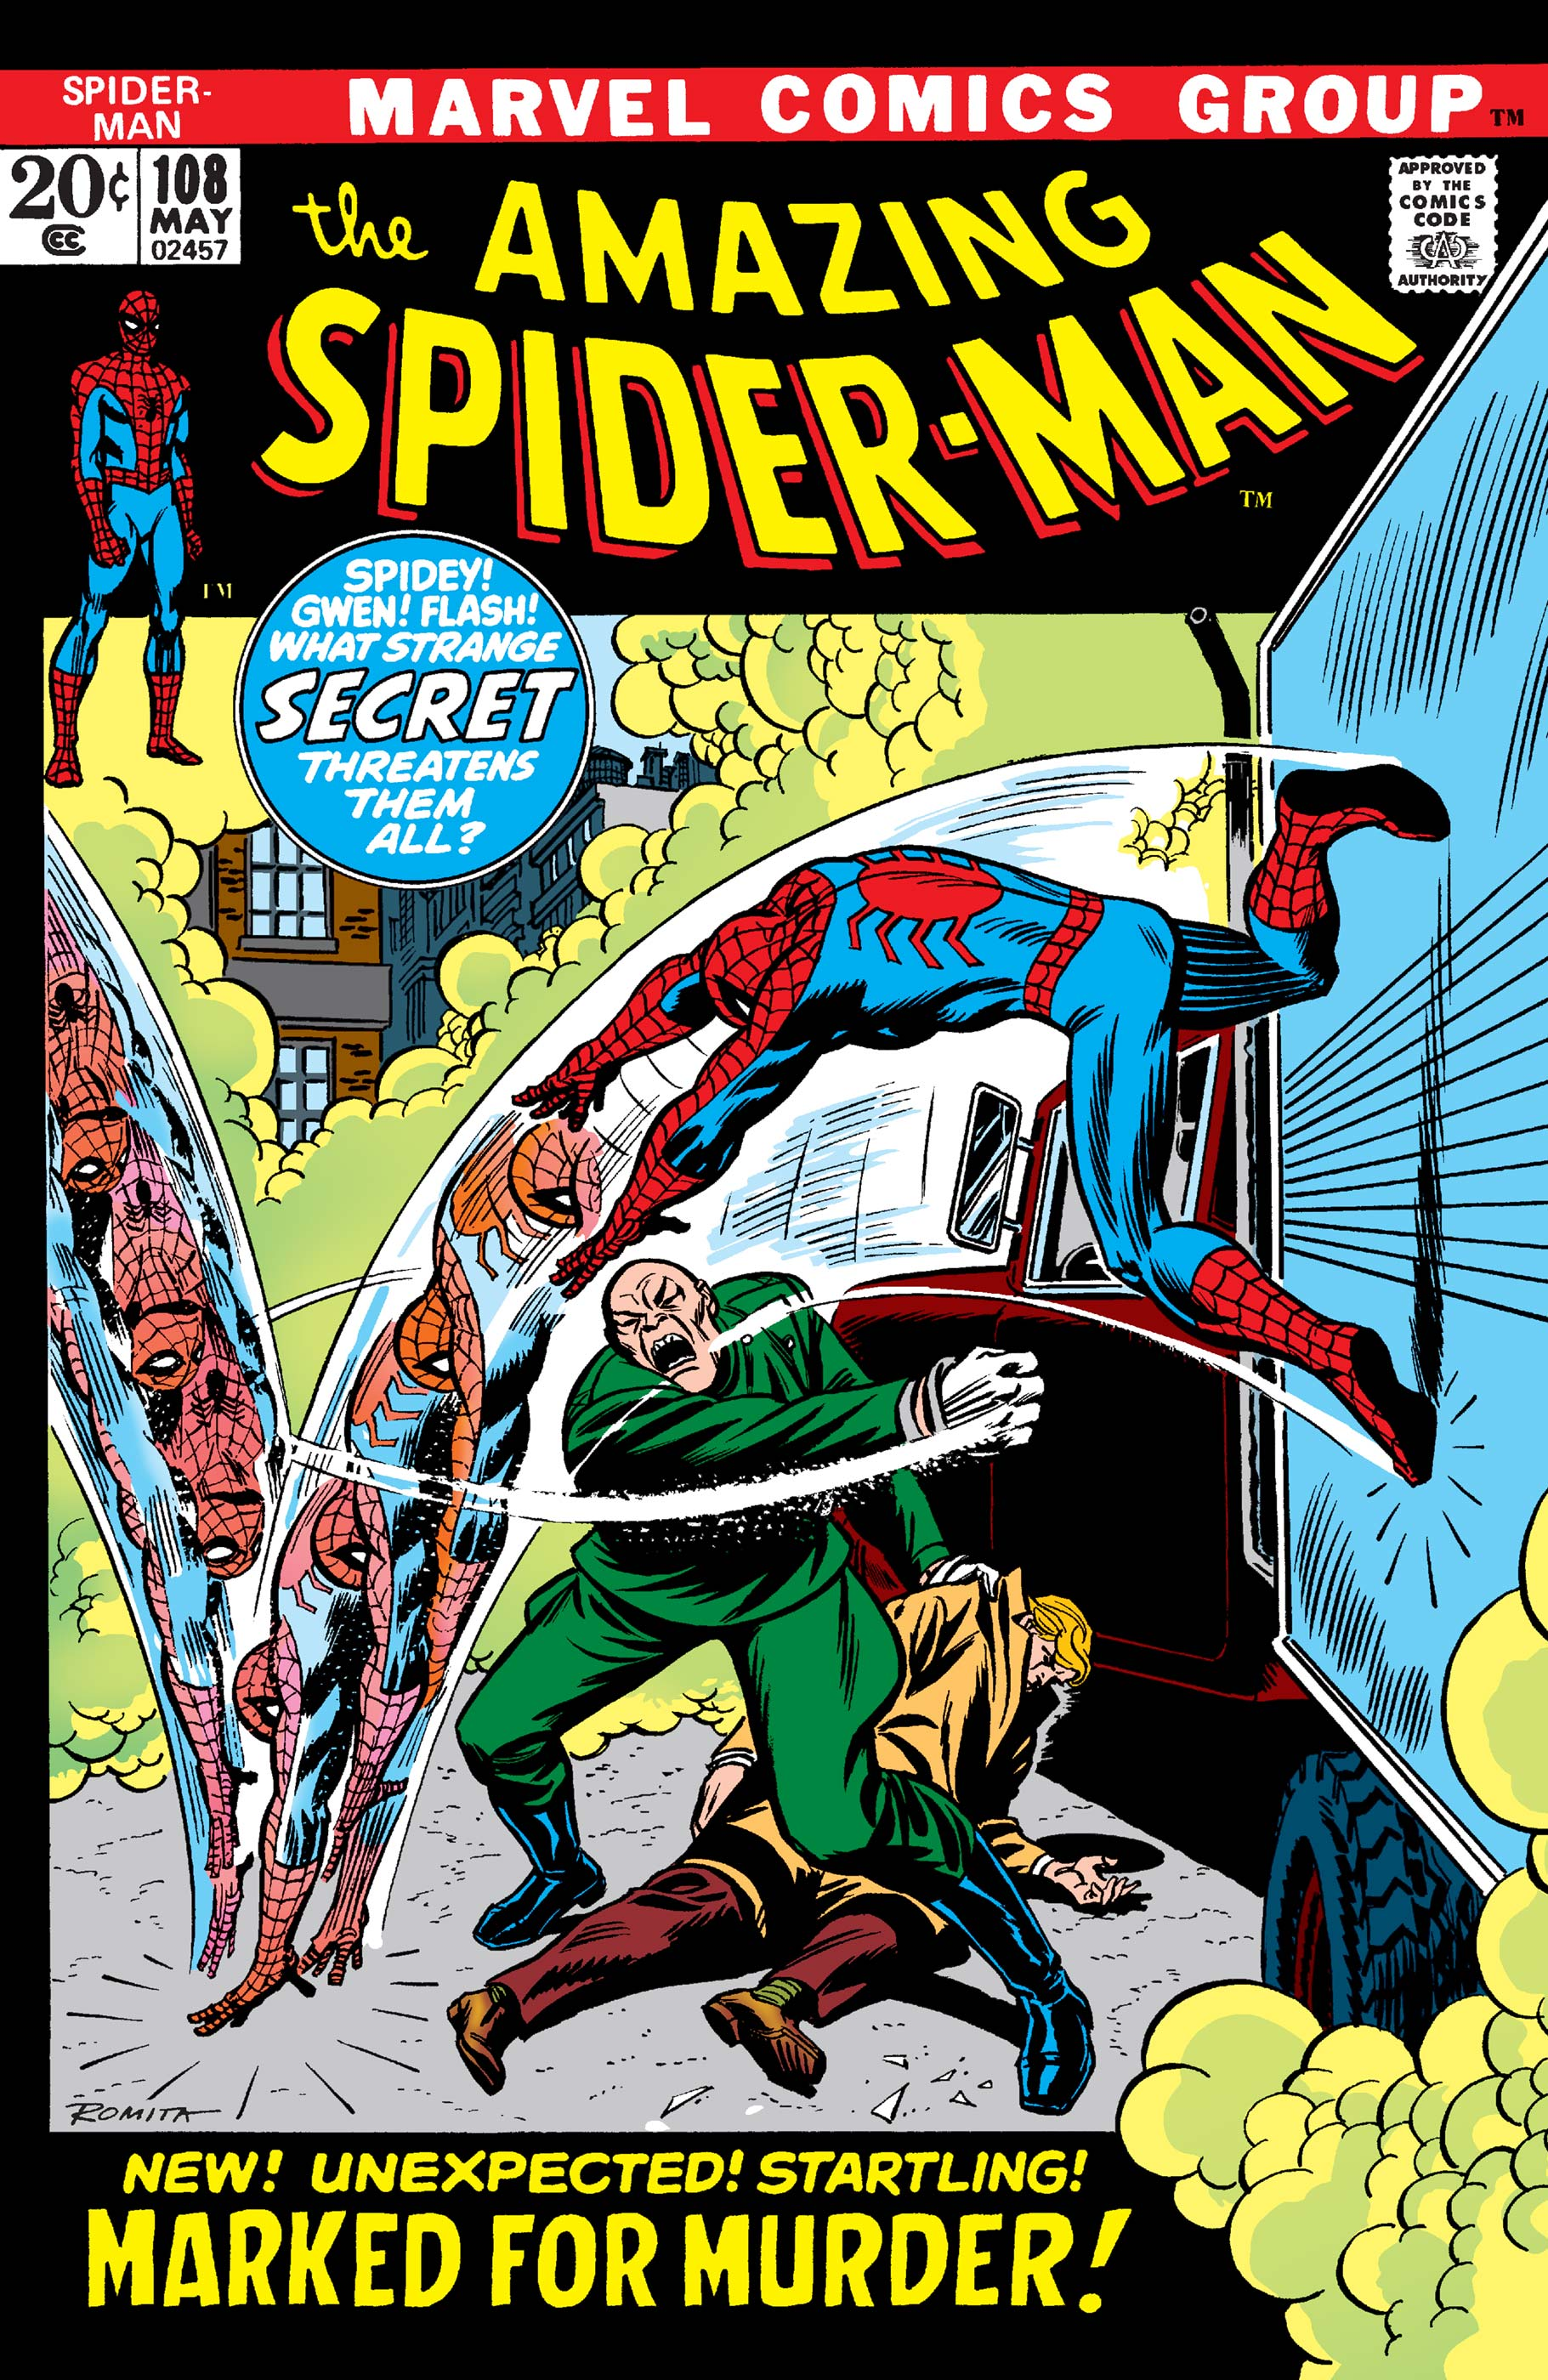 The Amazing Spider-Man (1963) #108